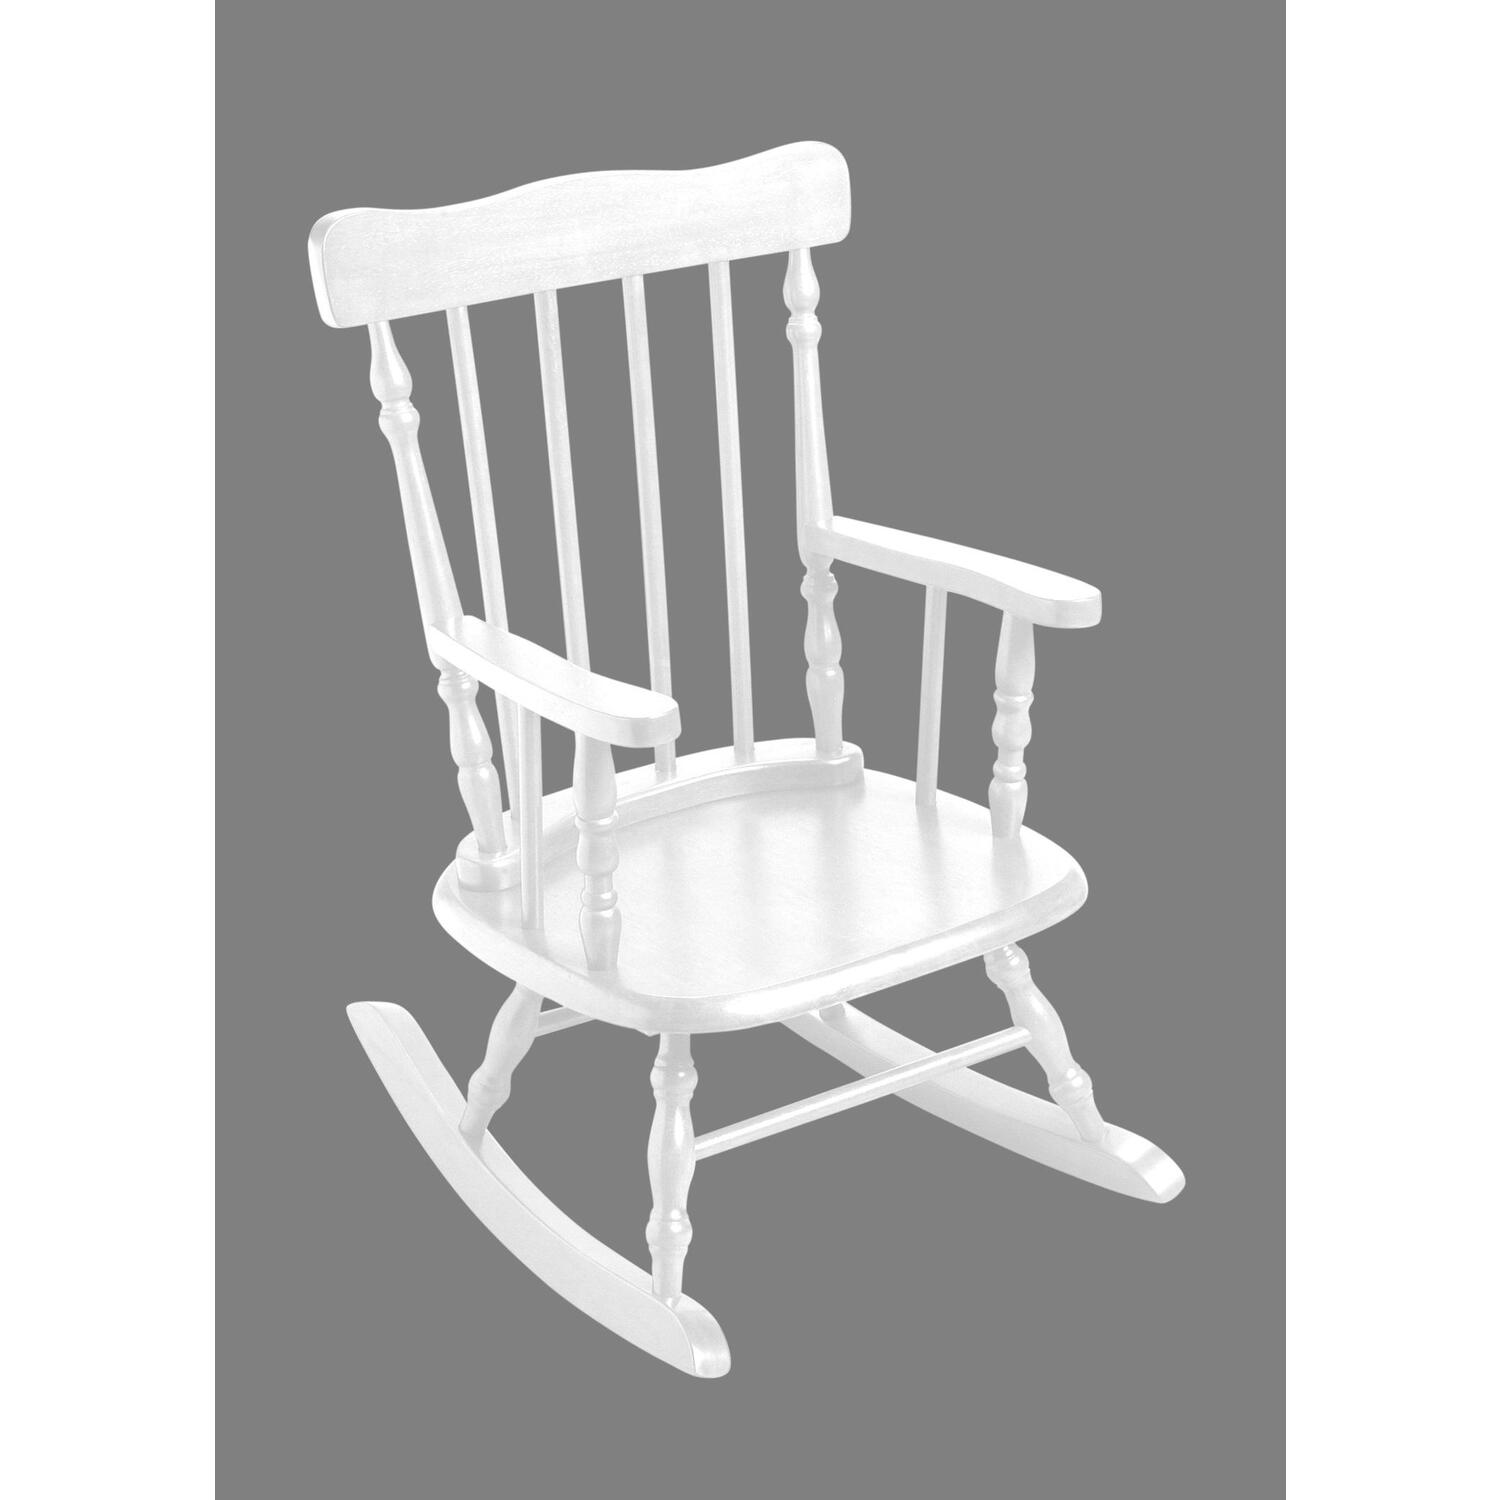 Childrens Rocking Chair Childrens Rocking Chair From 67 13 To 70 25 Ojcommerce